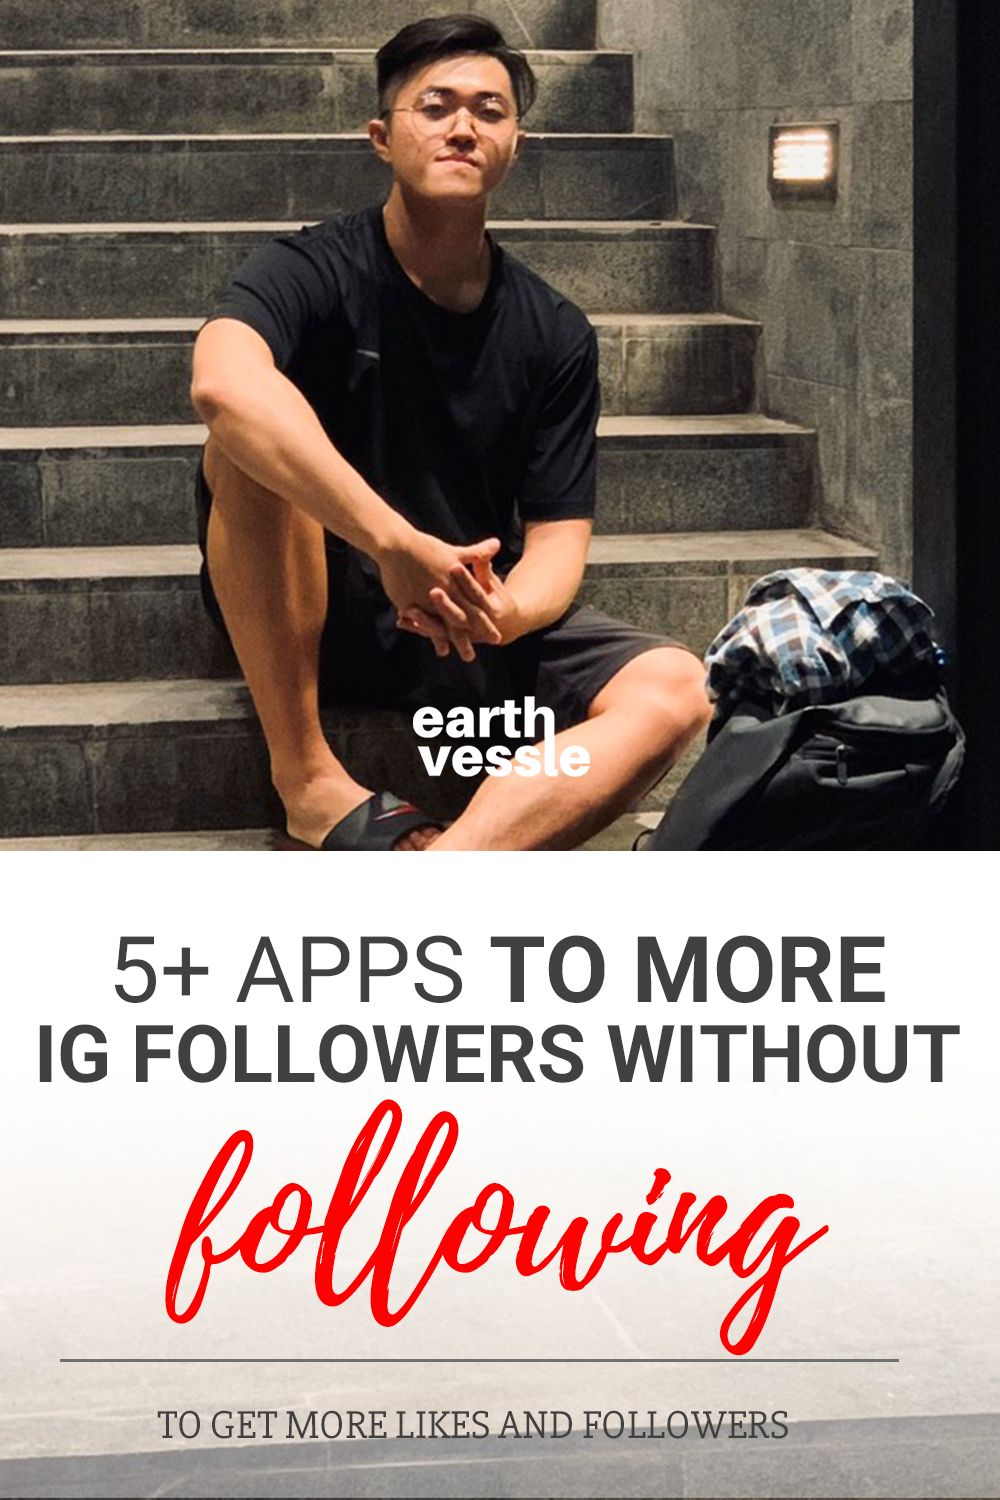 How To Get More Followers On Instagram Without Apps